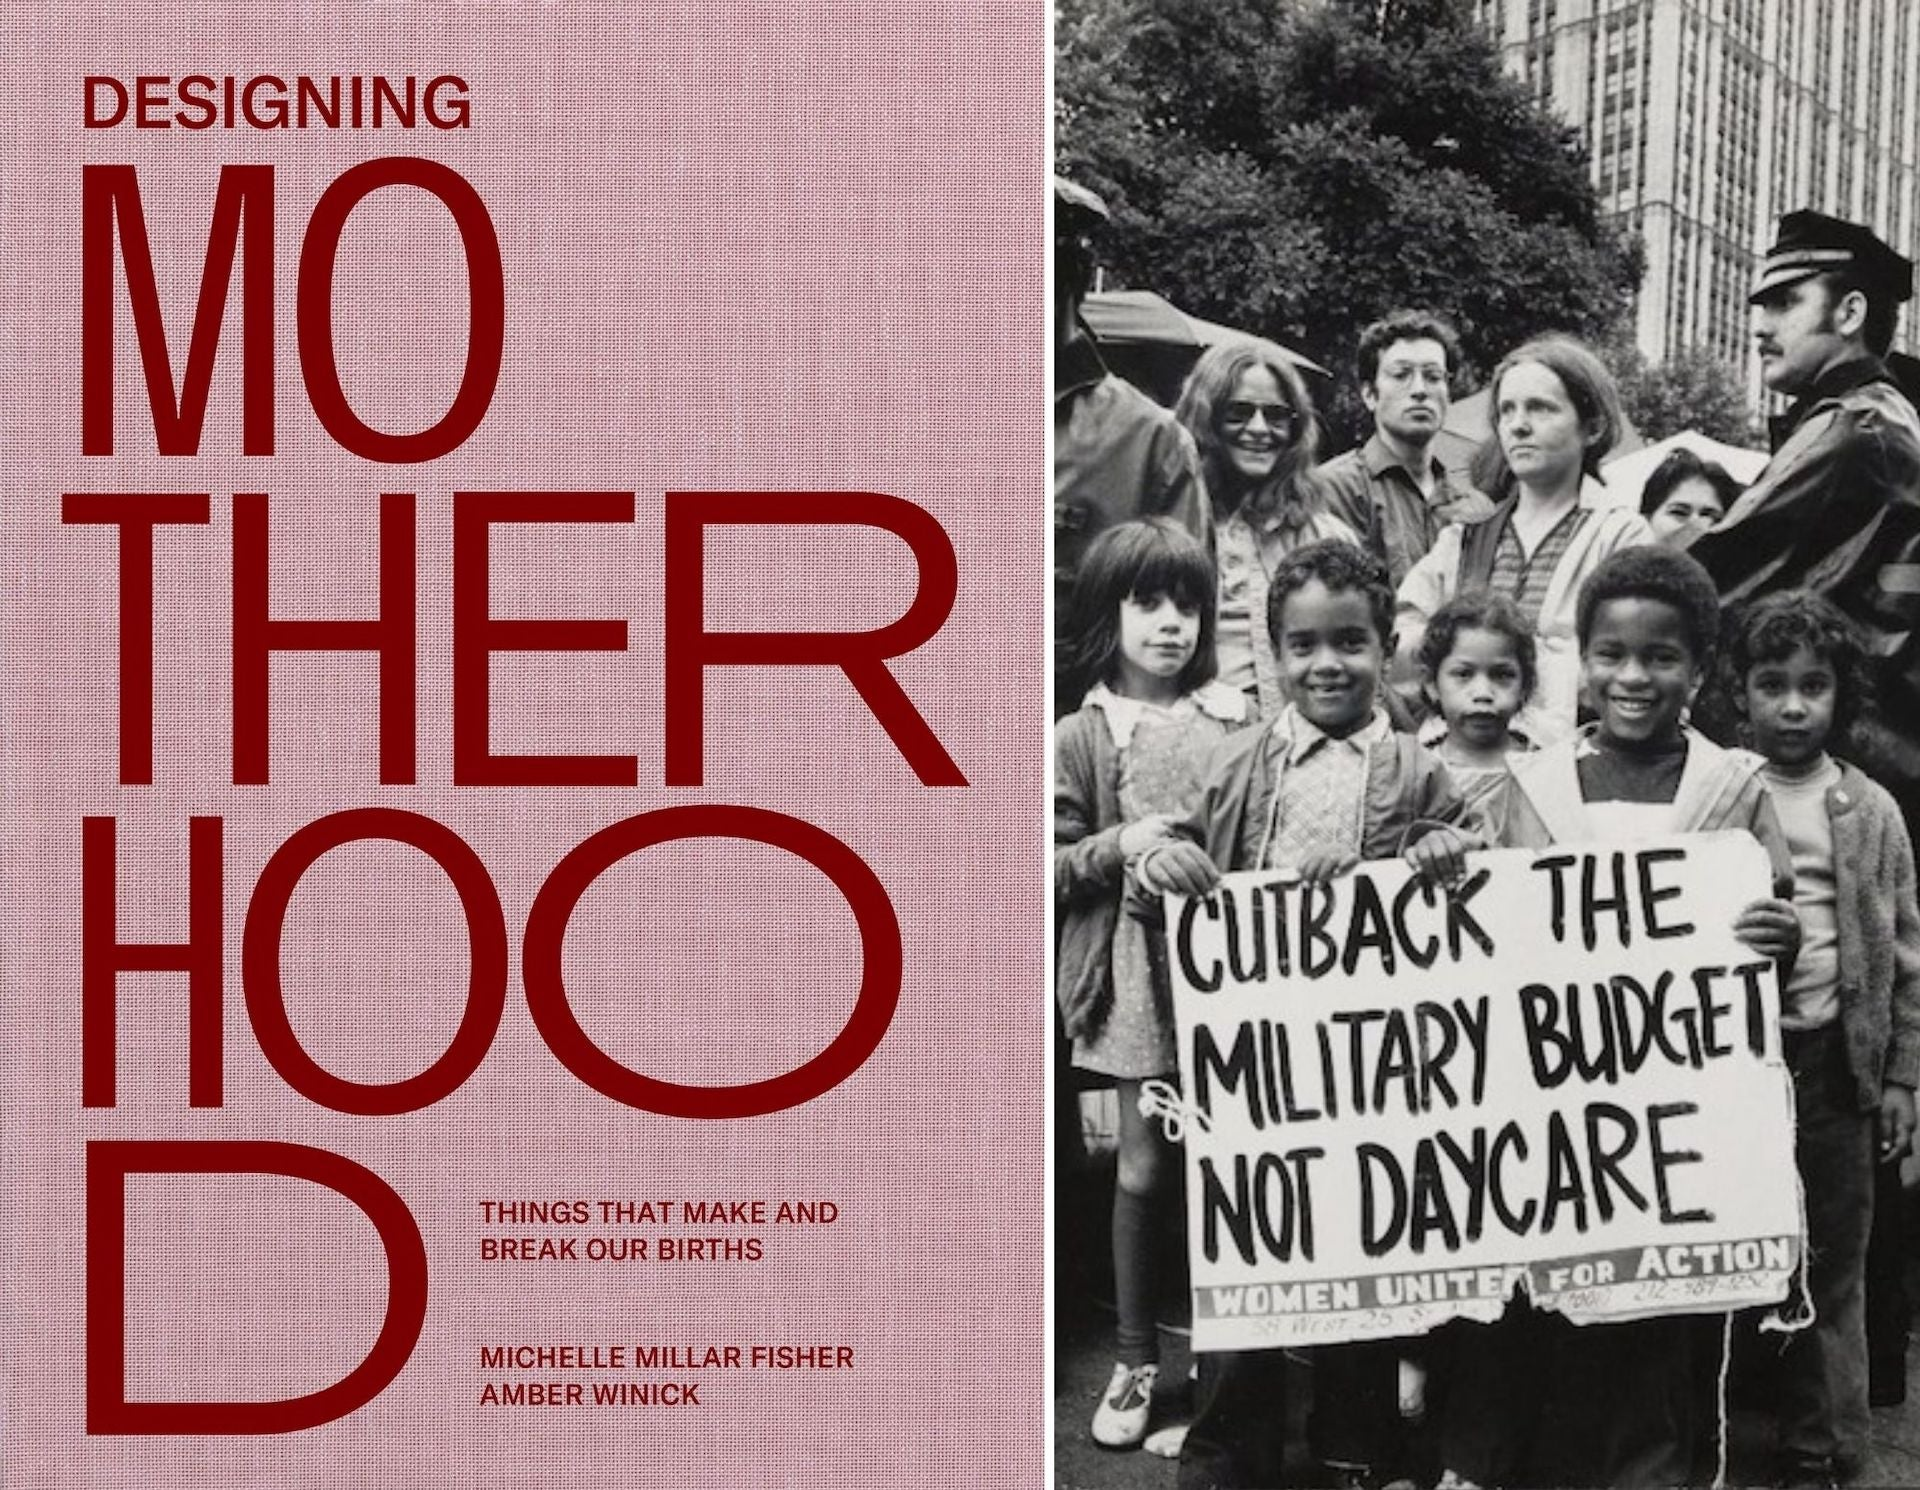 Designing Motherhood, published by MIT Press. | Children demonstrating for affordable child care in New York City. Photo by Bettye Lane, August 20, 1974. From Designing Motherhood; courtesy of Schlesinger Library